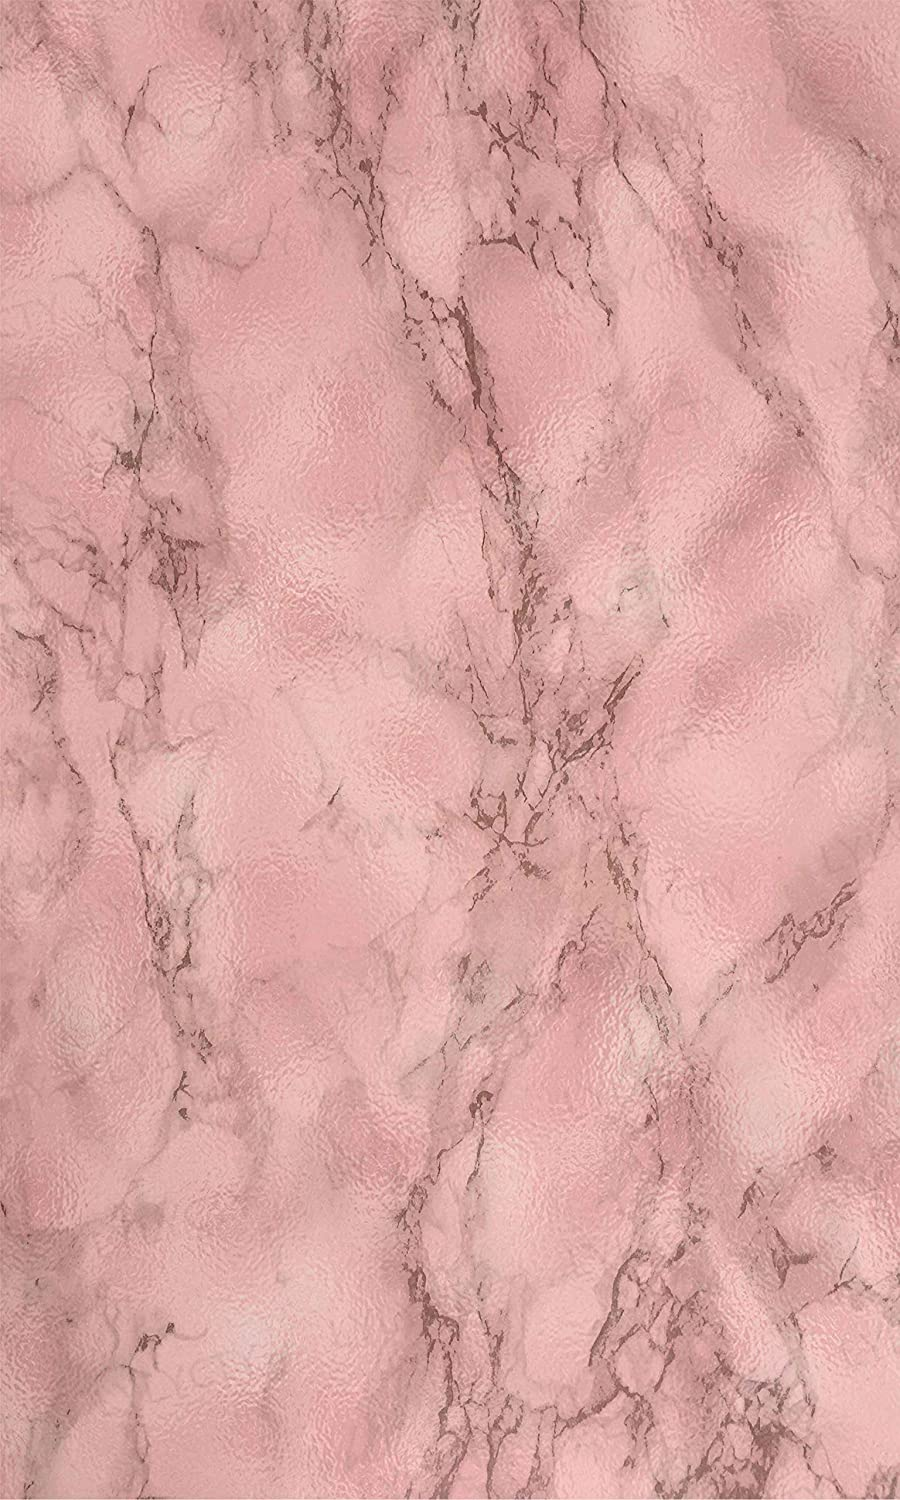 LYLYCTY 10x7ft Marbling Pattern Backdrop Pink Marble Pattern Background for Wedding Party Decor Girls Birthday Party Photography Backdrops Banner Photo Booth Studio Props BJLY47